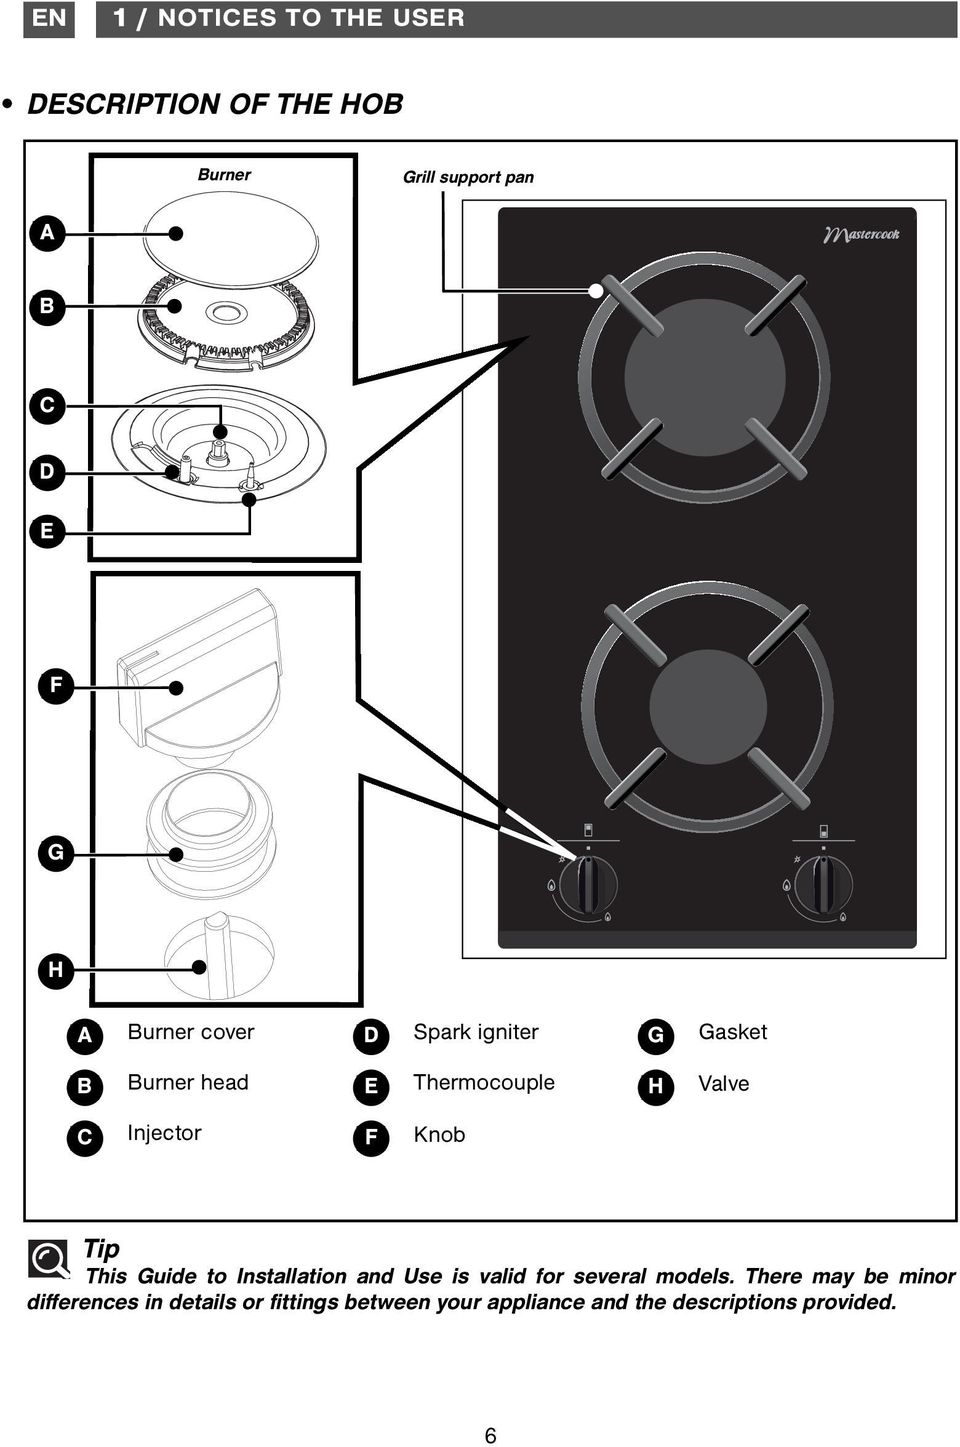 Knob Tip This Guide to Installation and Use is valid for several models.